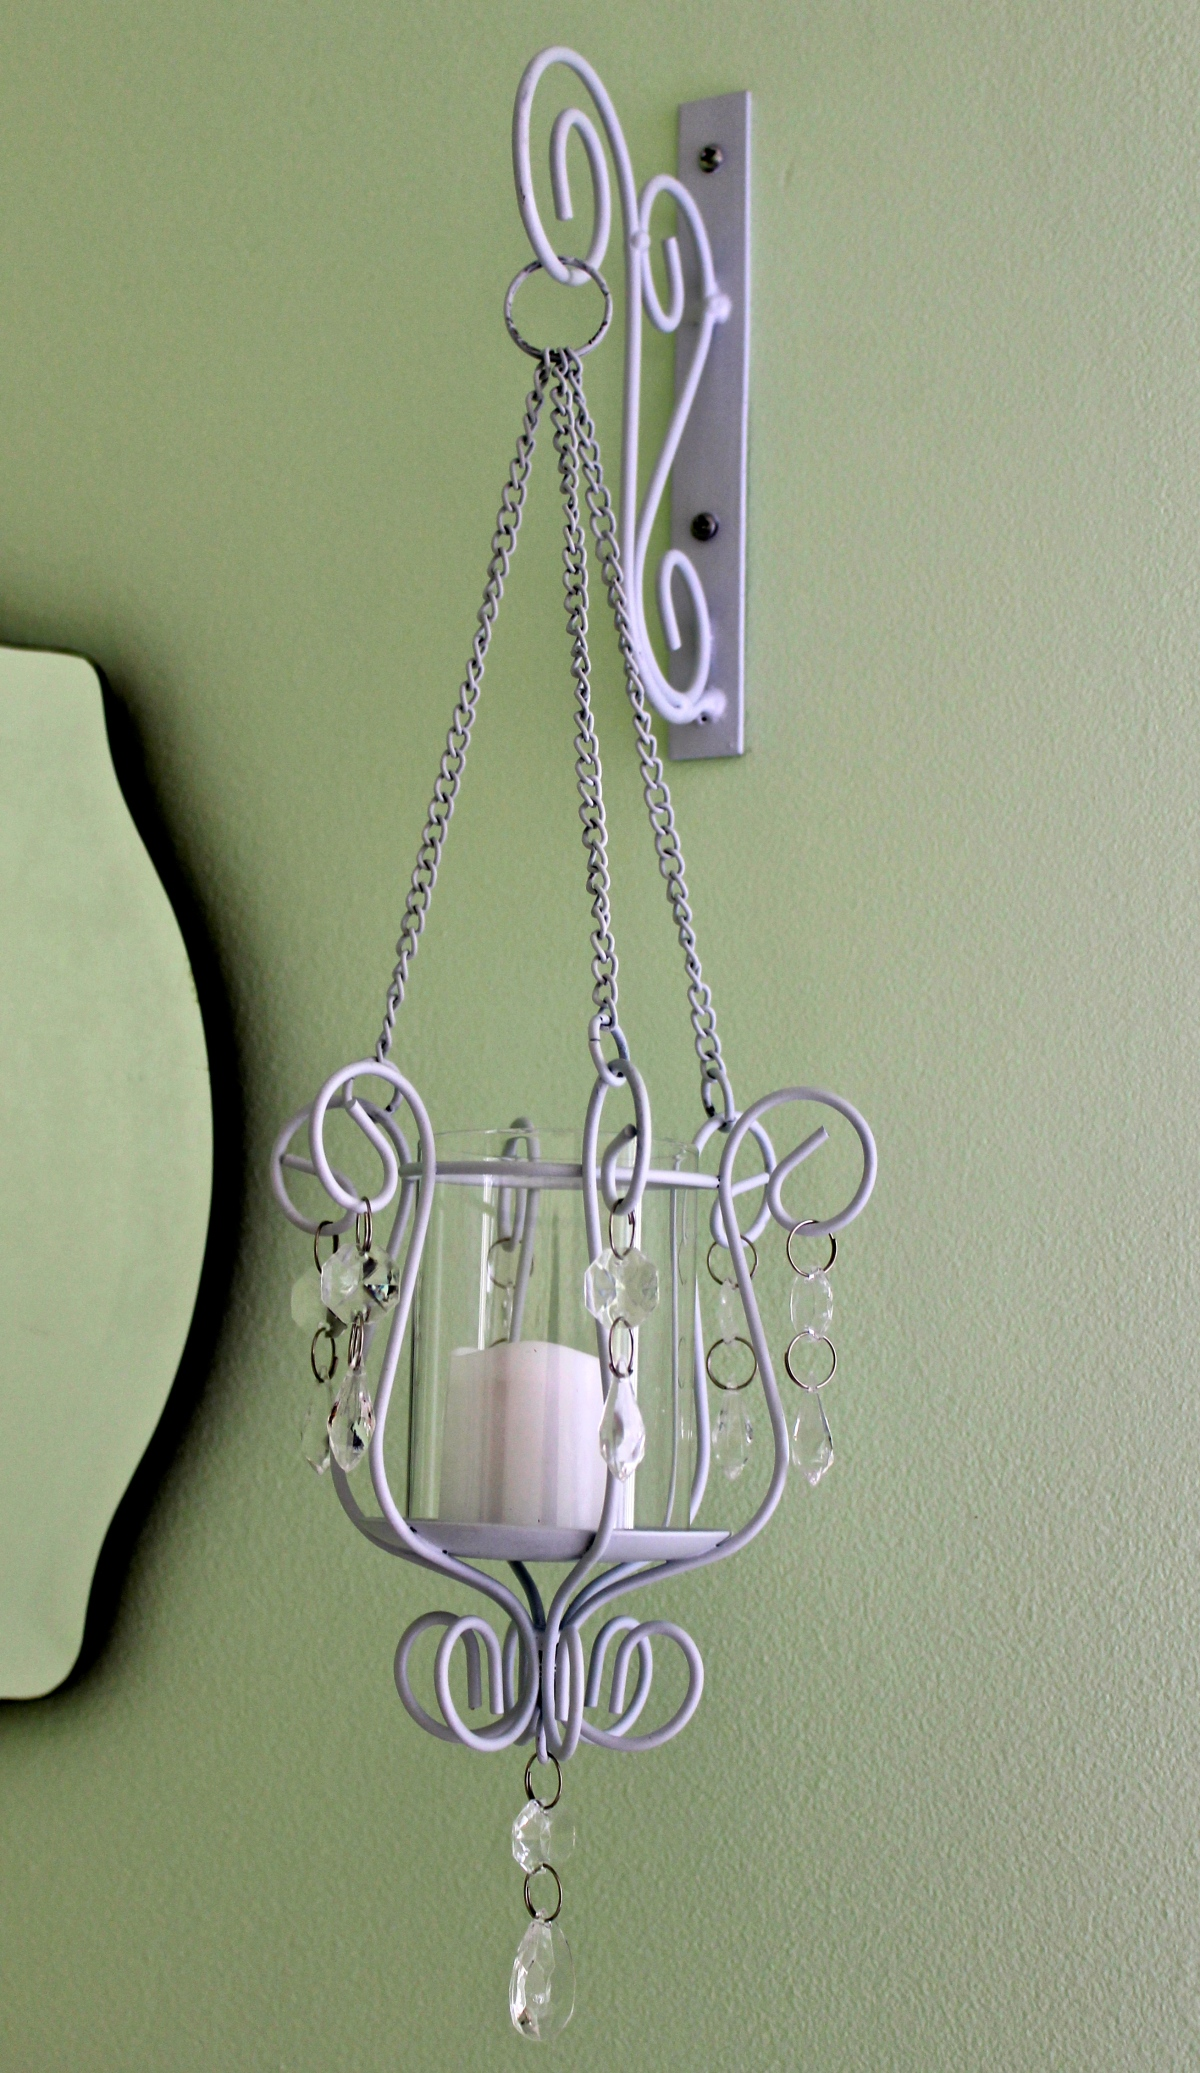 Sconces add a unique accent to the vintage mirror. Photo by Alexa